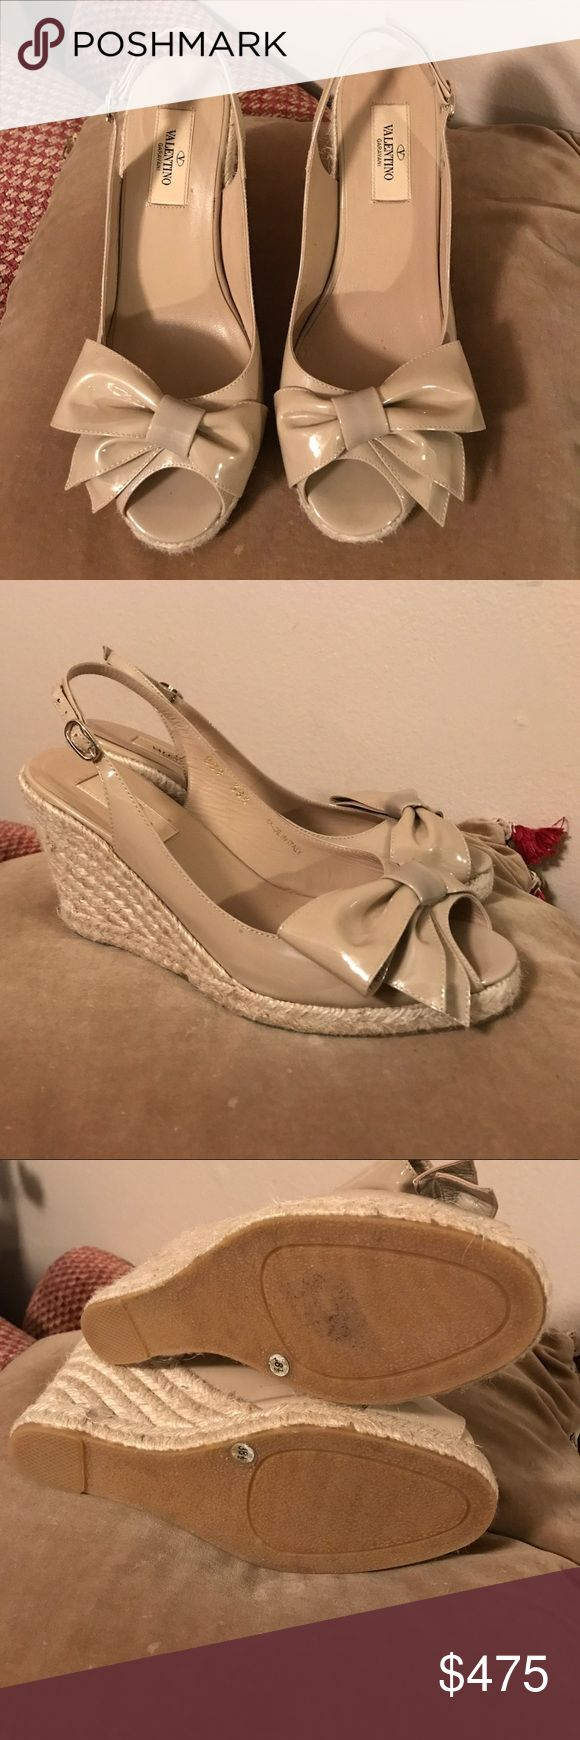 VALENTINO WEDGES Authentic Valentino wedges, excelente condition Valentino Shoes Wedges